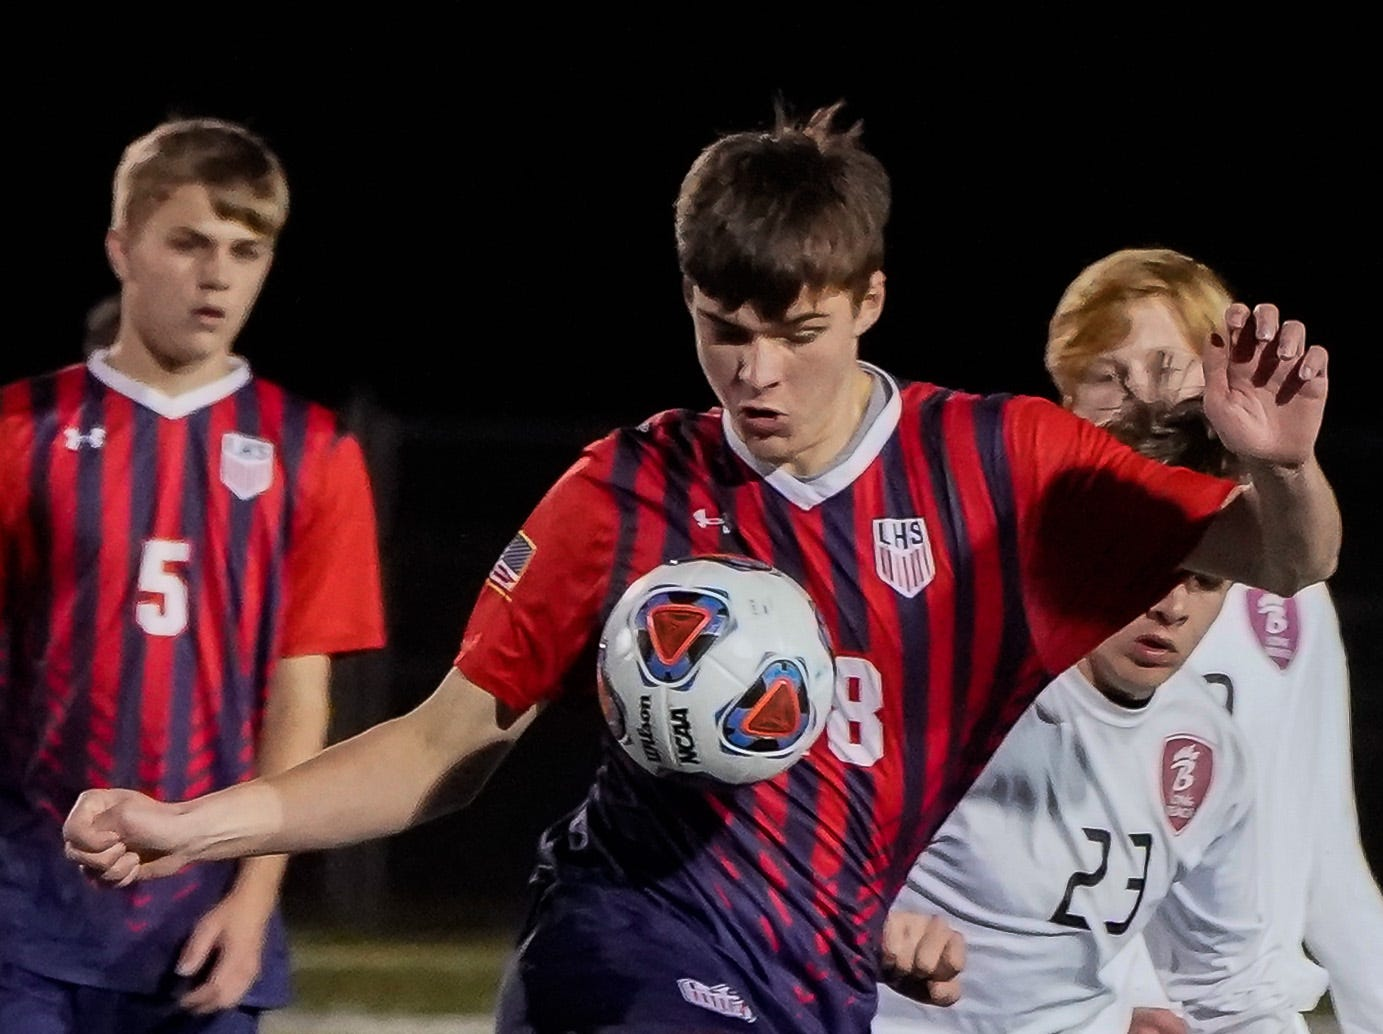 Lewisburg's Connor Murphy (18) controls a ball against Long Beach during the MHSAA 5A Boys Soccer Championships held at Brandon High School in Brandon, MS, Saturday February 9, 2019.(Bob Smith-For The Clarion Ledger)